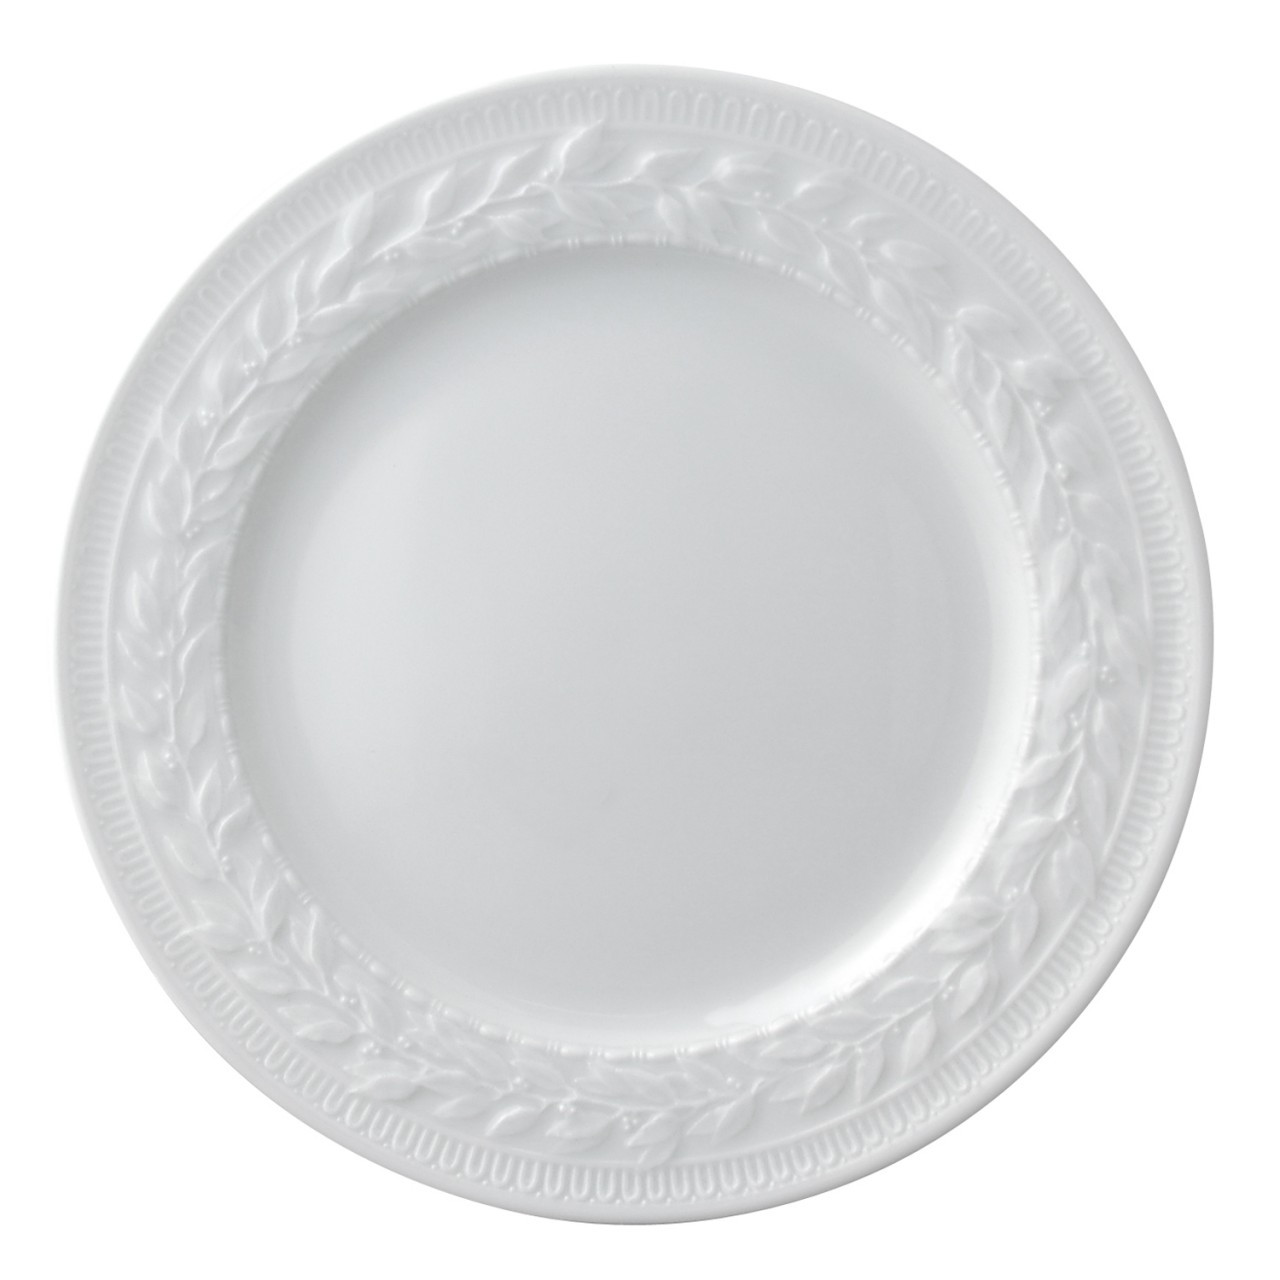 Bernardaud Louvre Coupe Dessert Plate 8 5 in